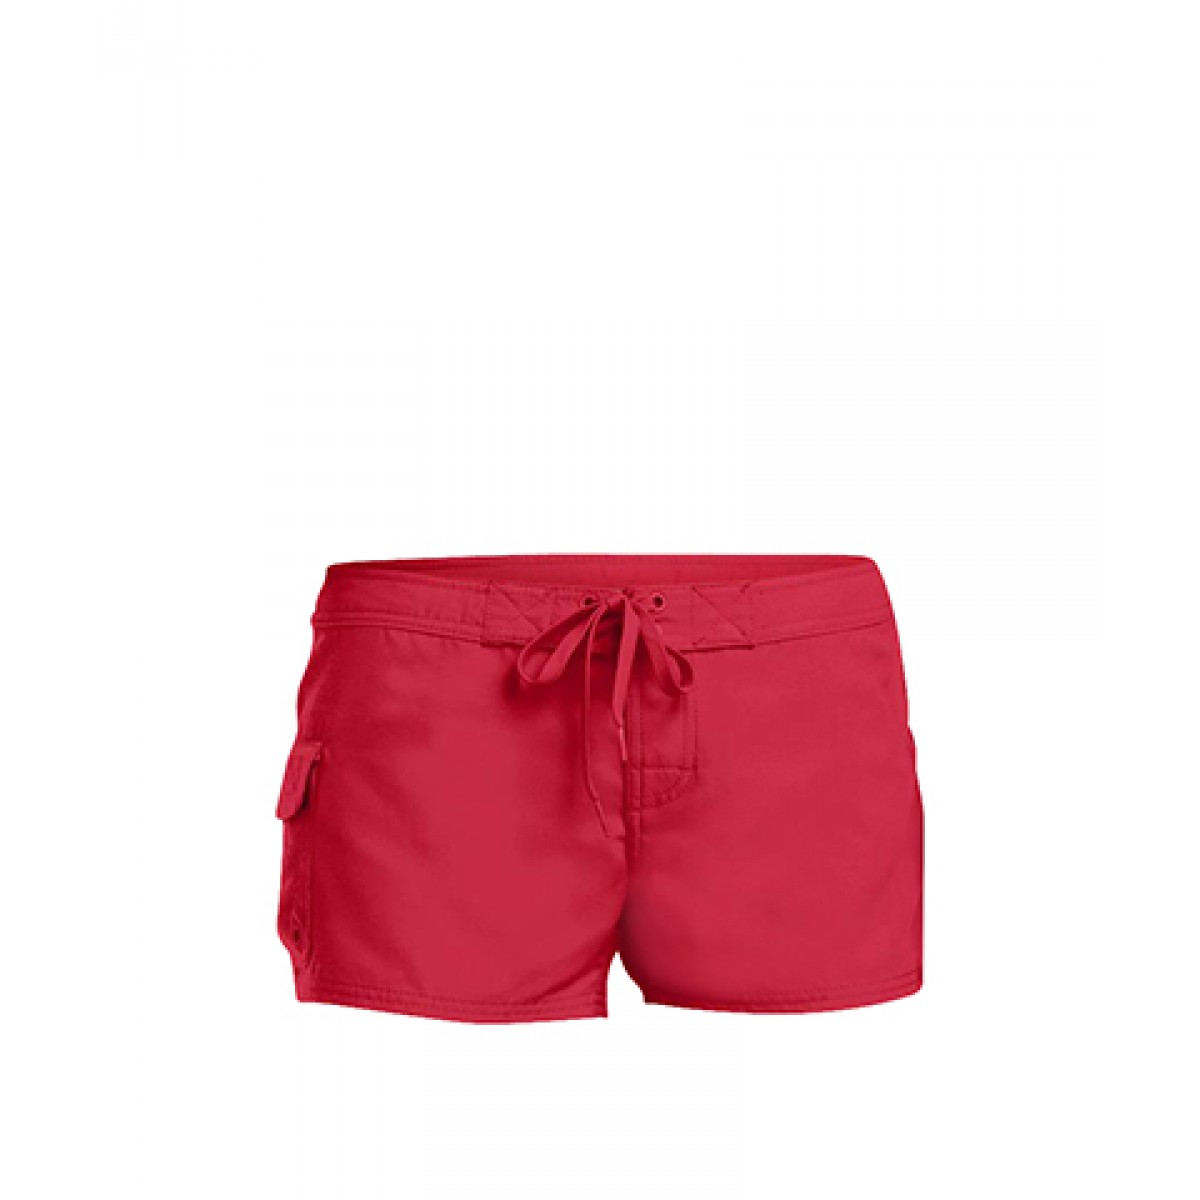 Juniors Boardshort-Red-S